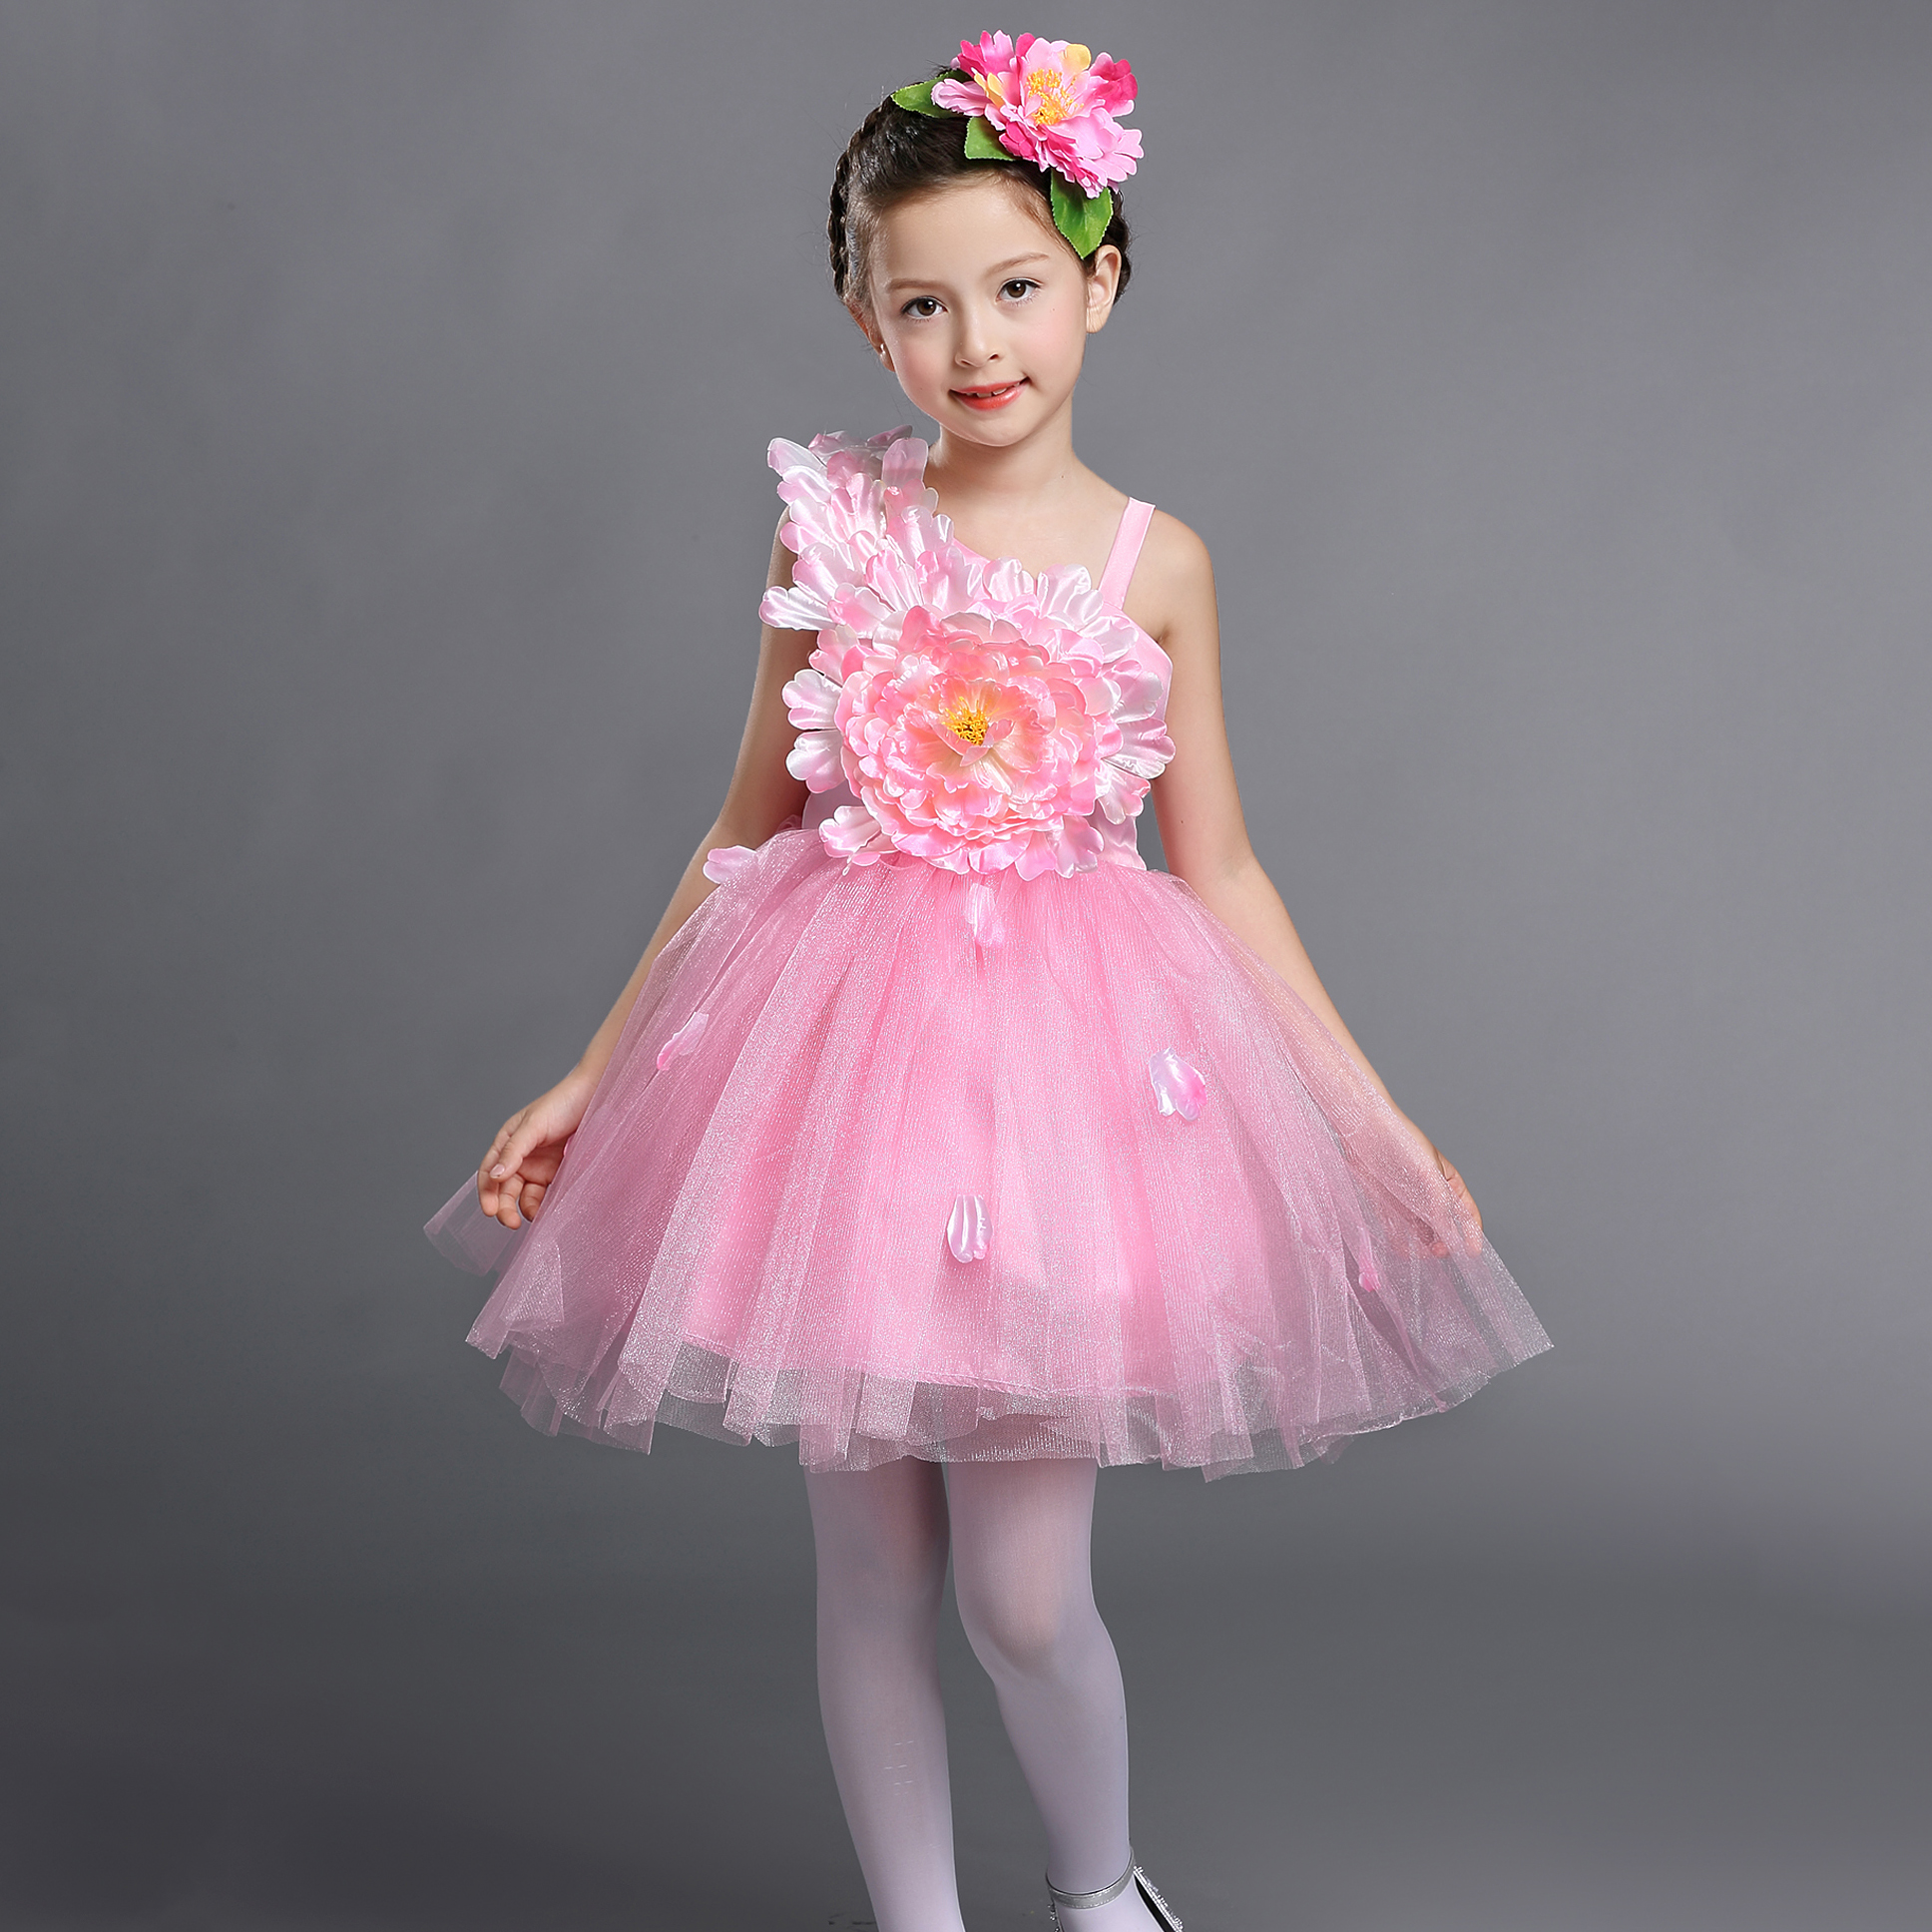 Yellow White Pink Pageant Flower Girls Short Ball Gown Prom Dresses Size 2 To 12 Children